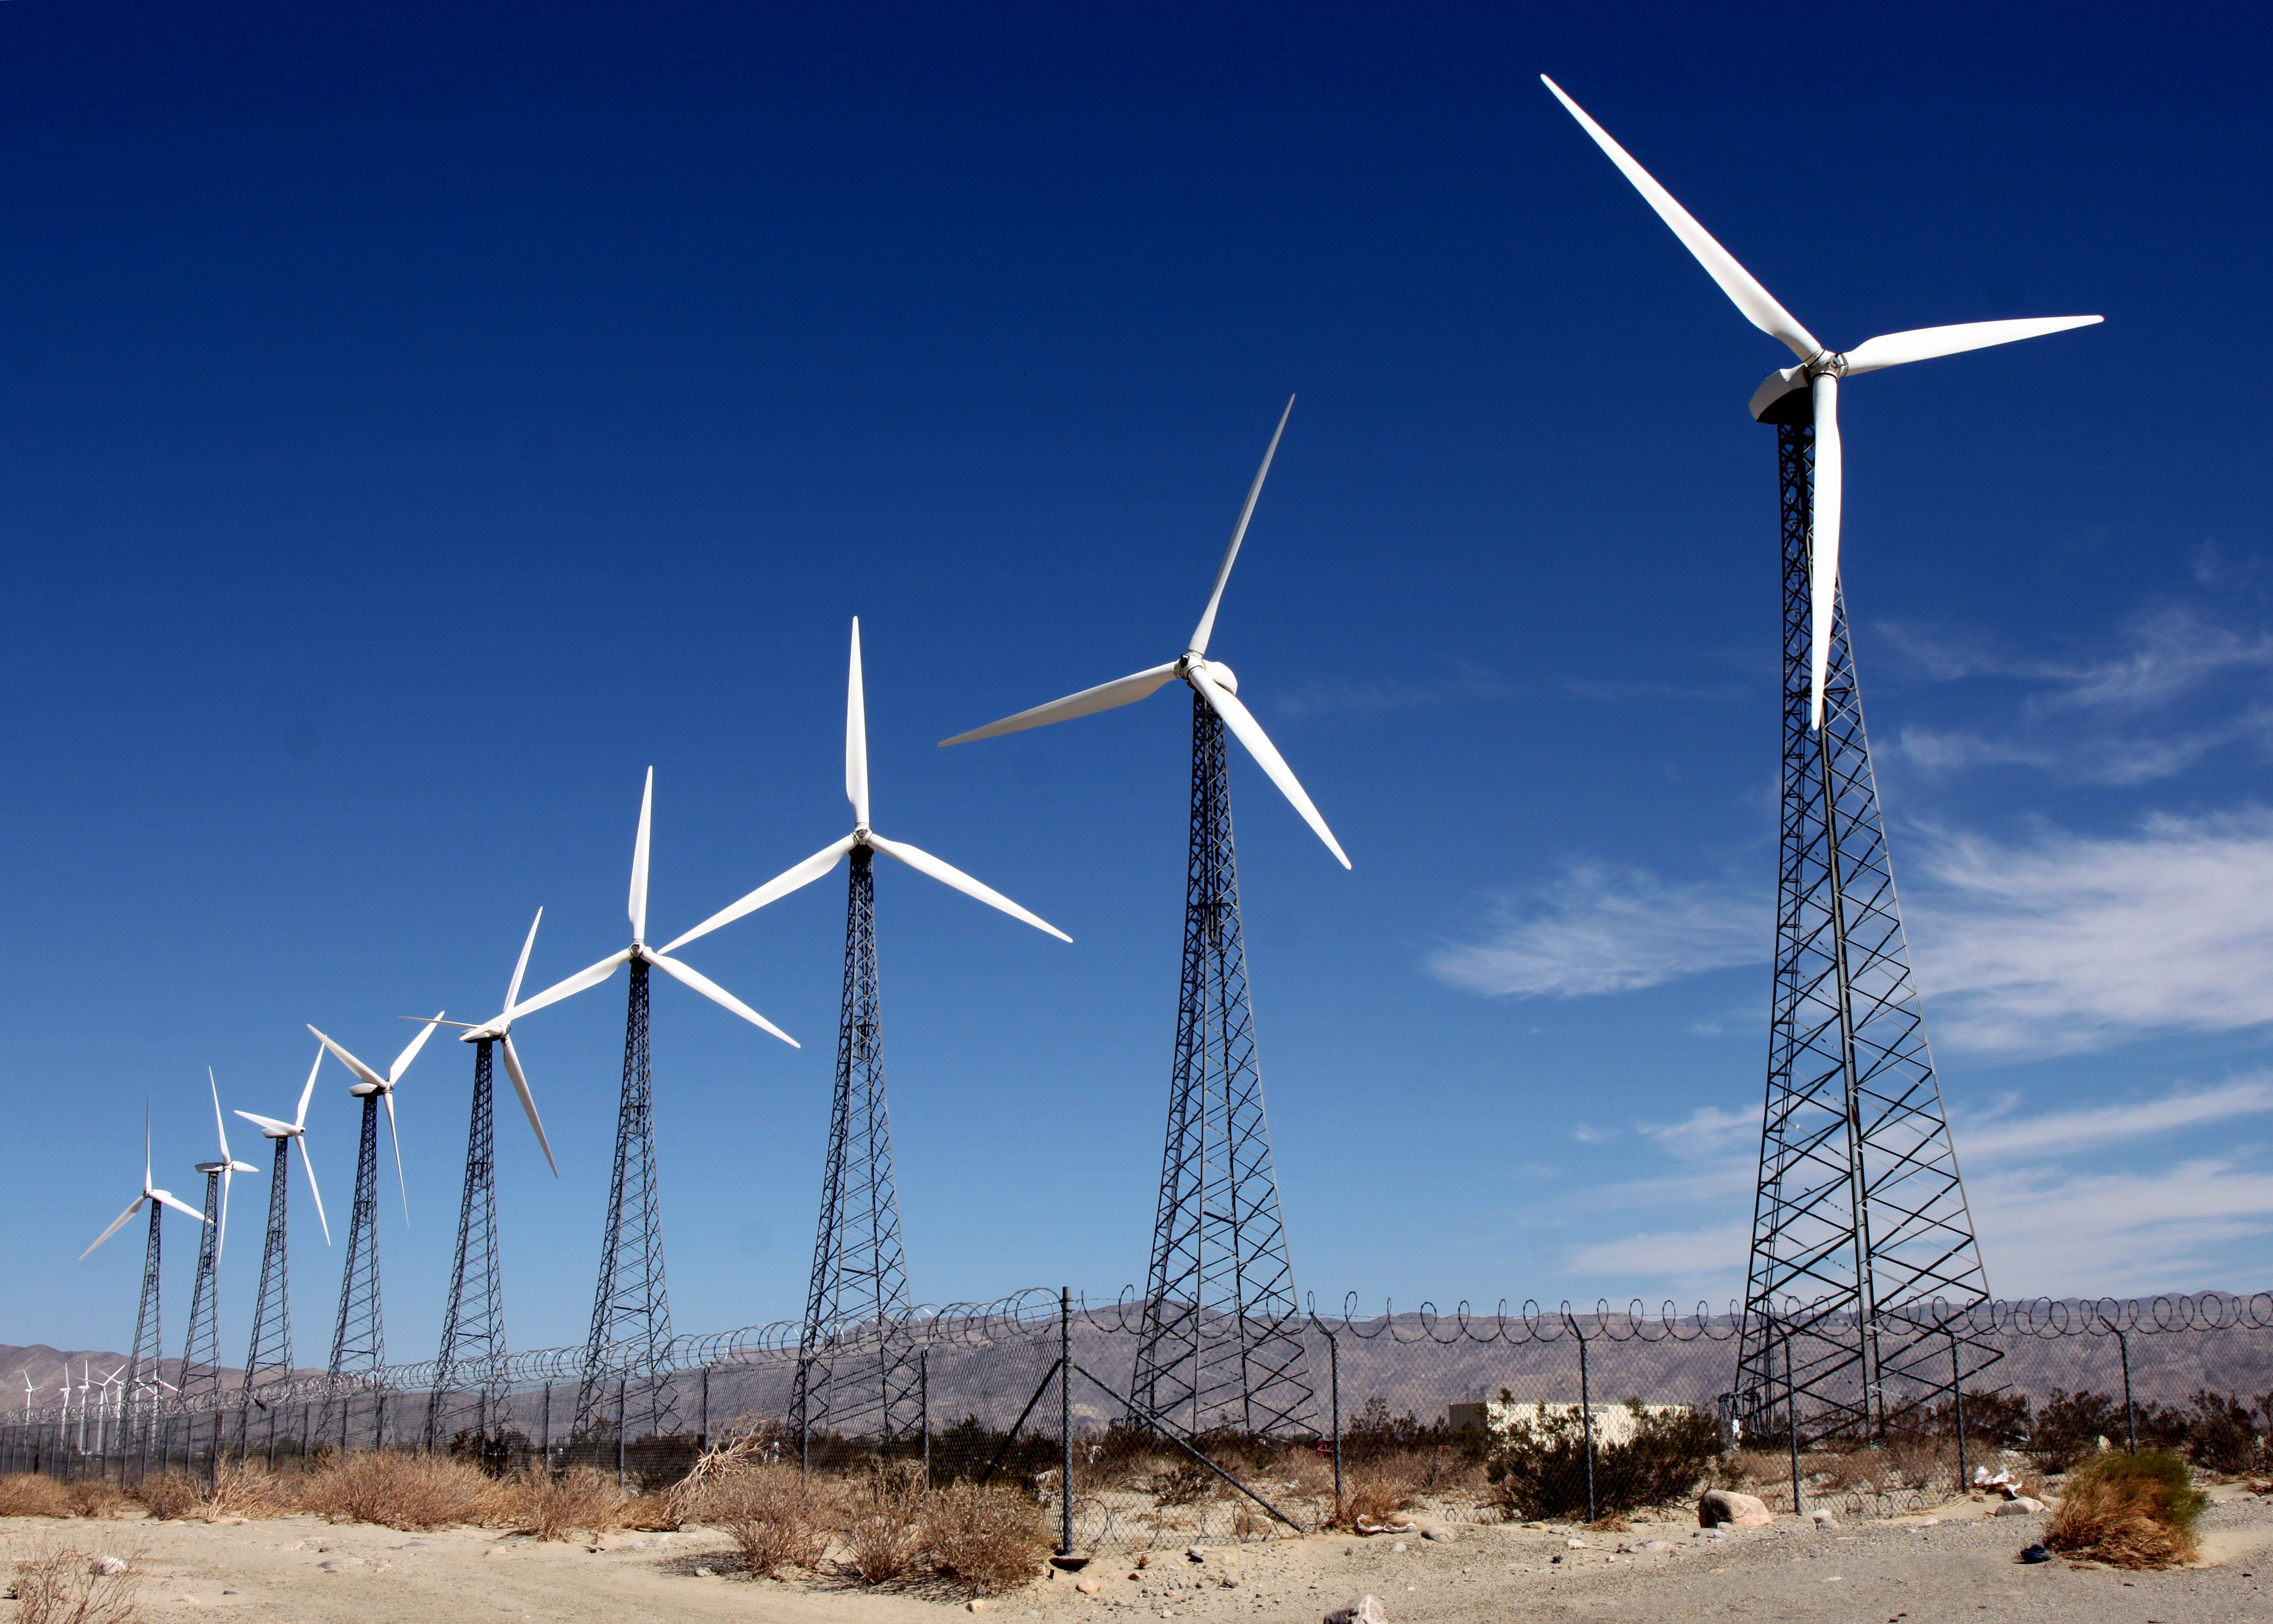 Wind farms such as these in Palm Springs, California could be the answer to low-cost energy throughout the US. Photo: Prayitno Hadinata via flickr (CC BY-ND 2.0)